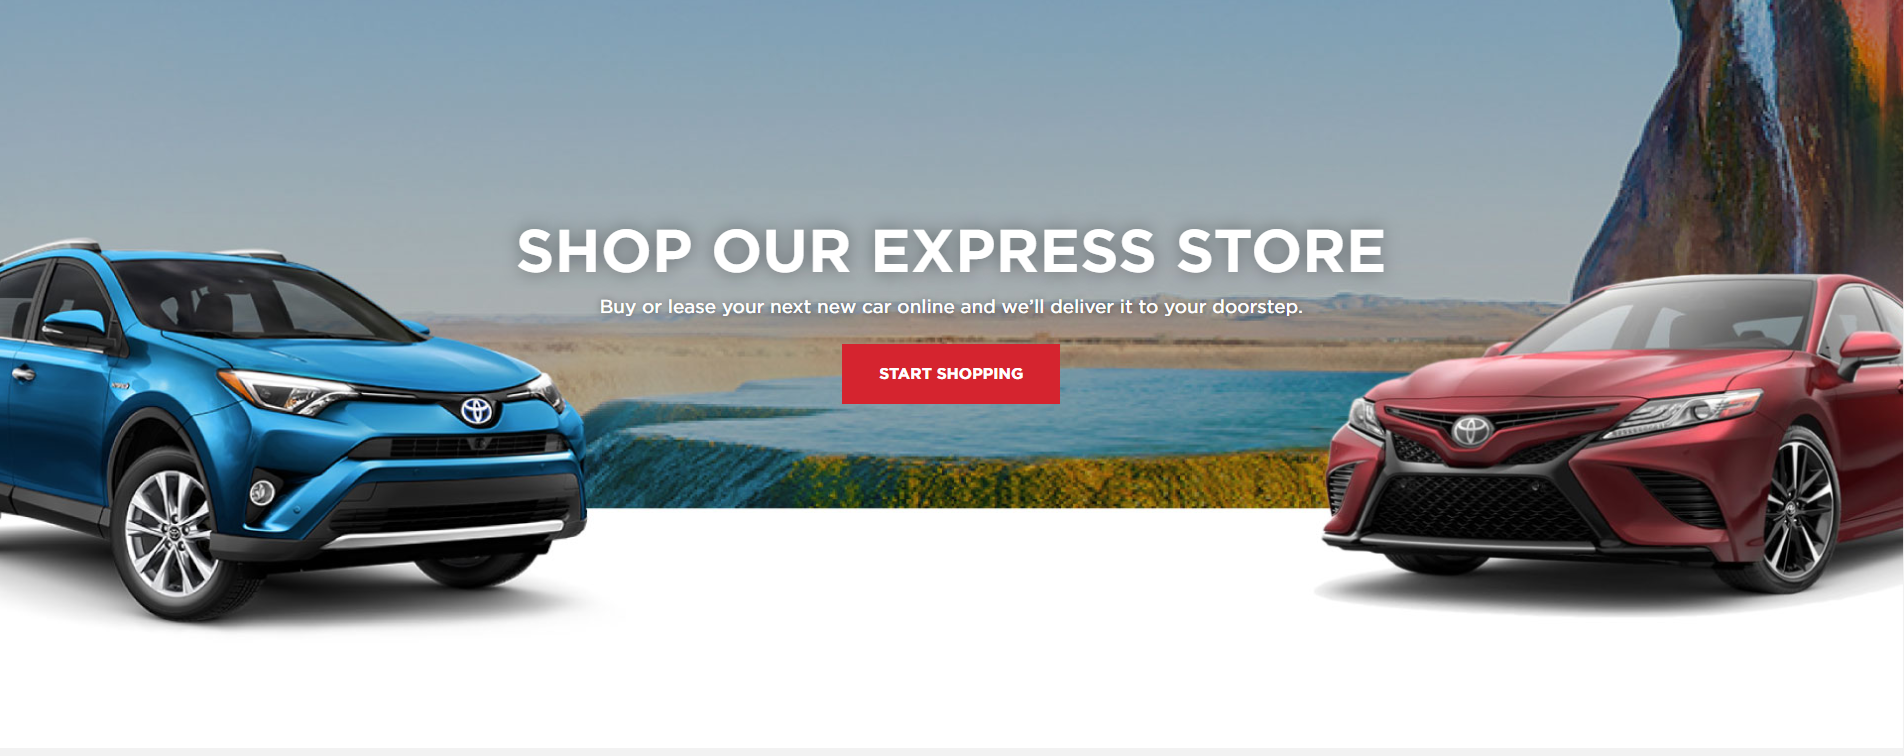 express store